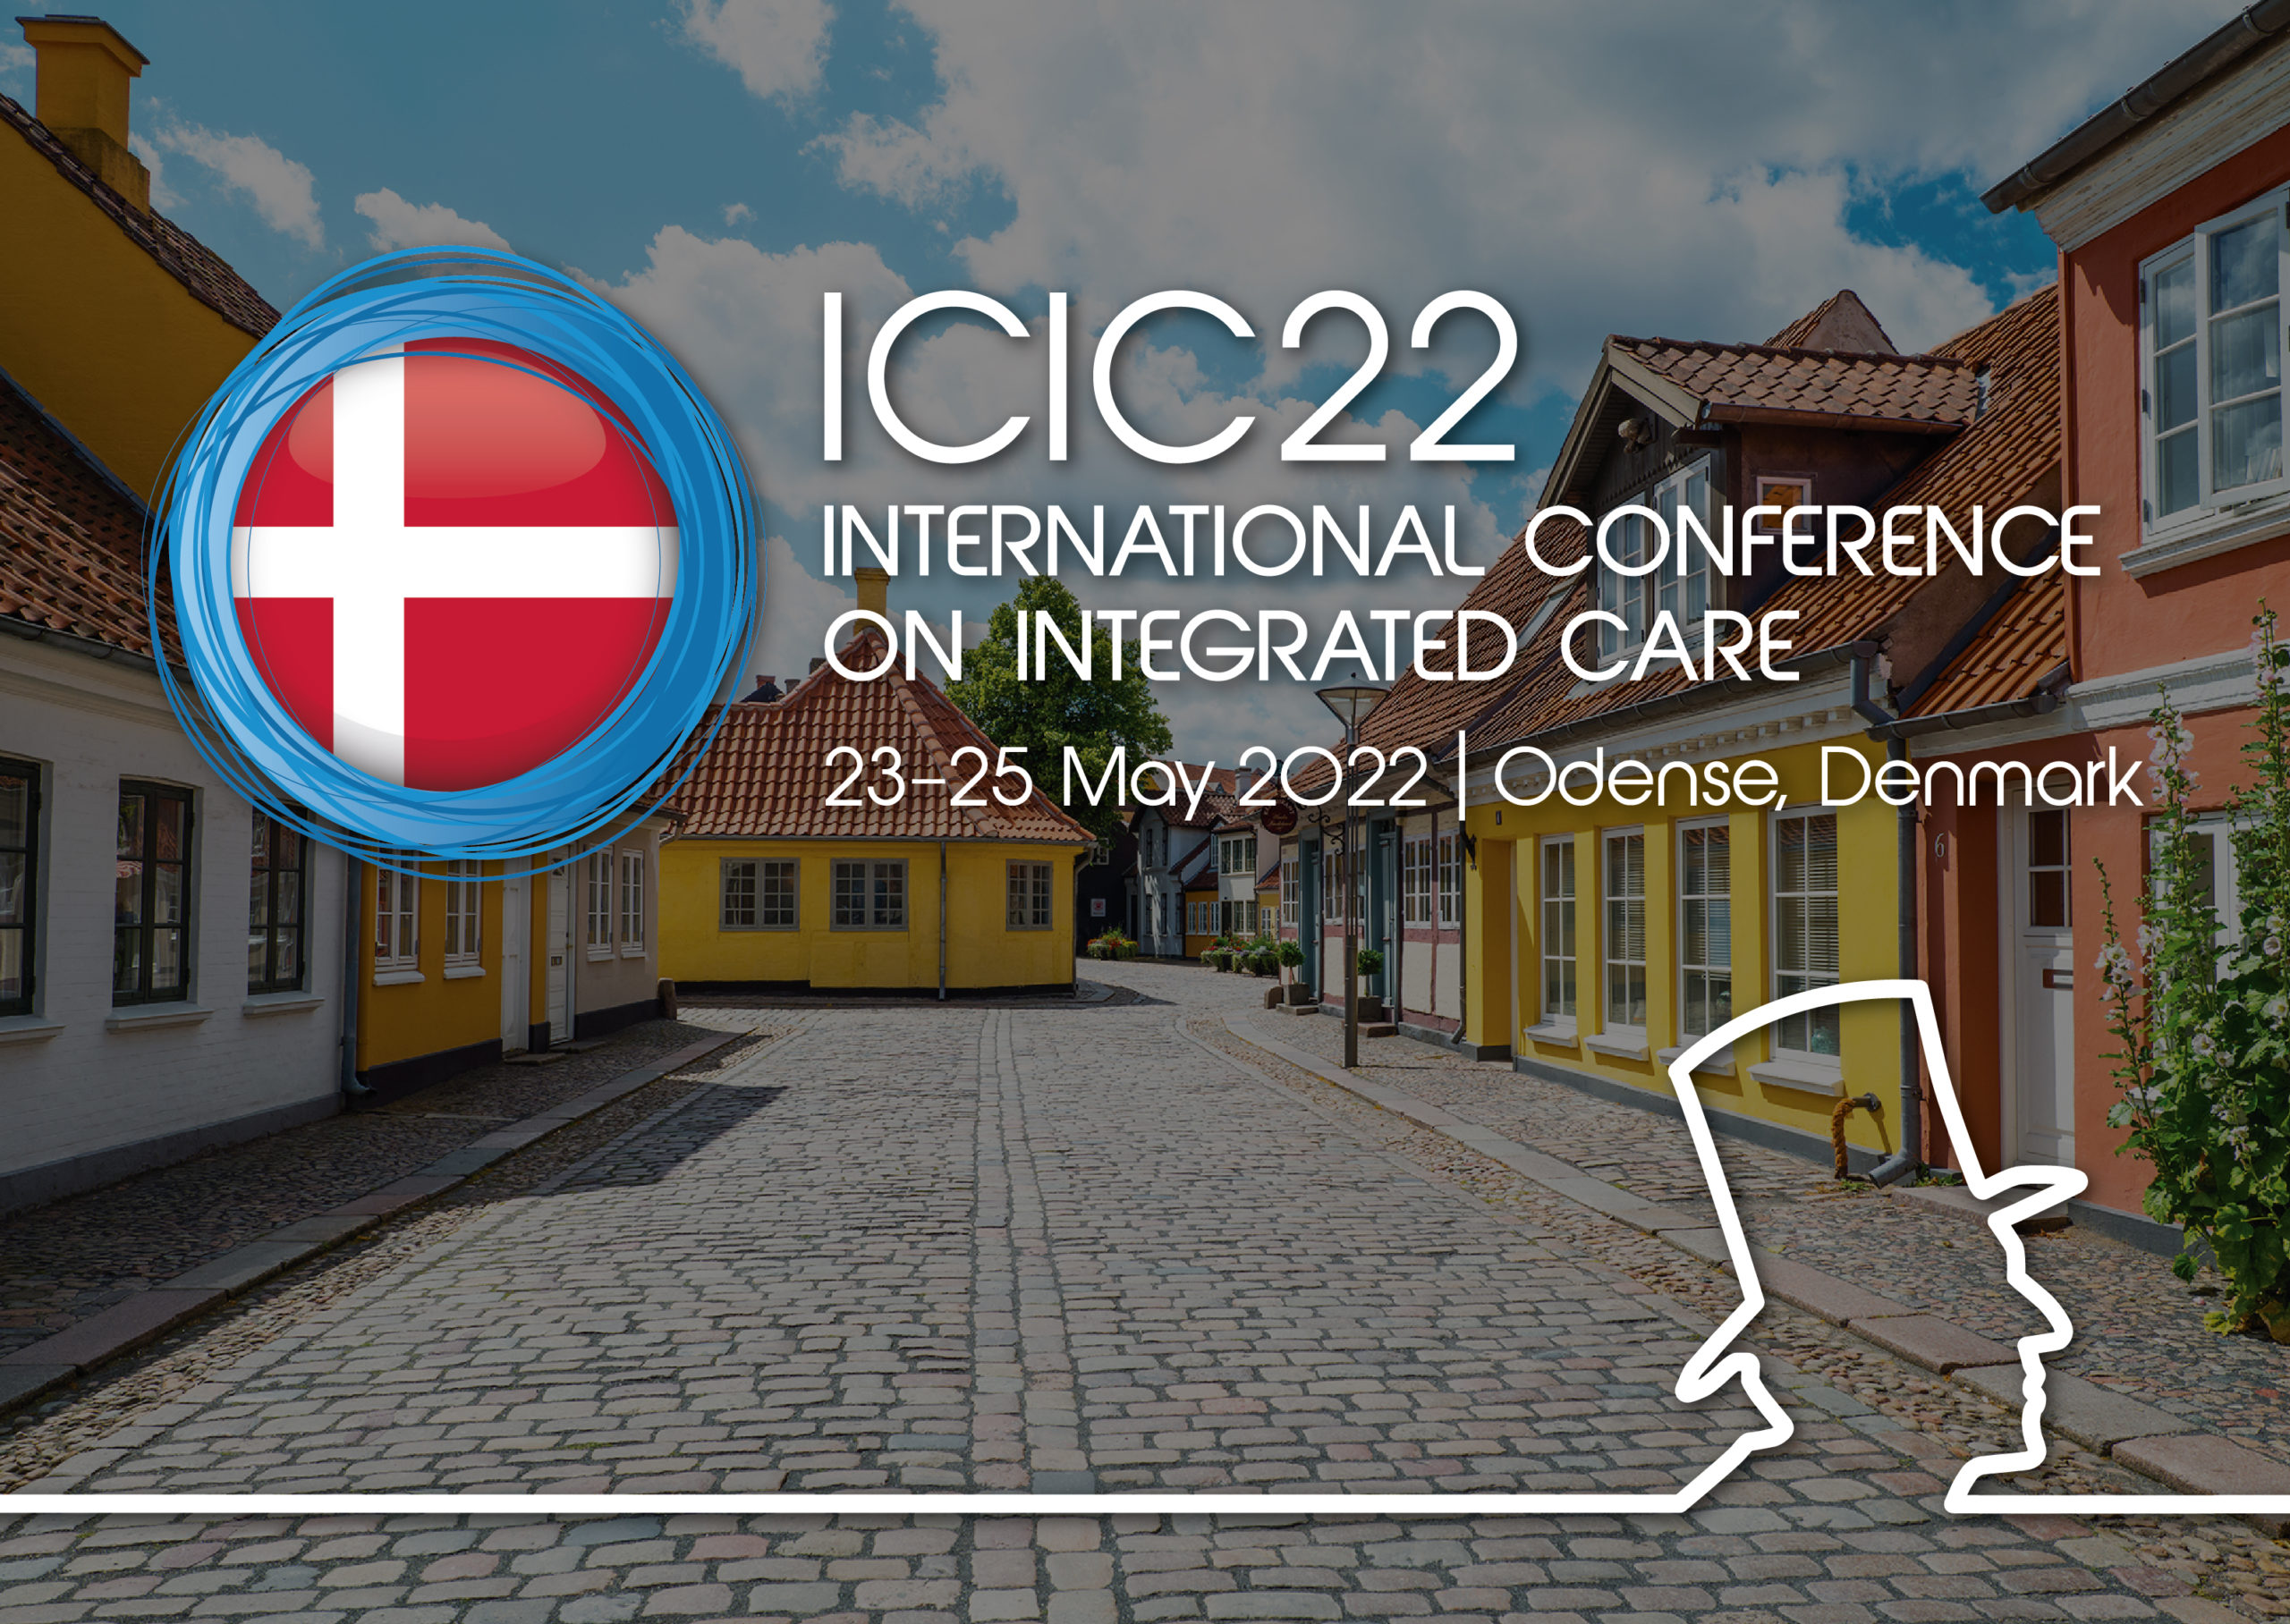 ICIC22- 22nd International Conference on Integrated Care, Odense, Denmark